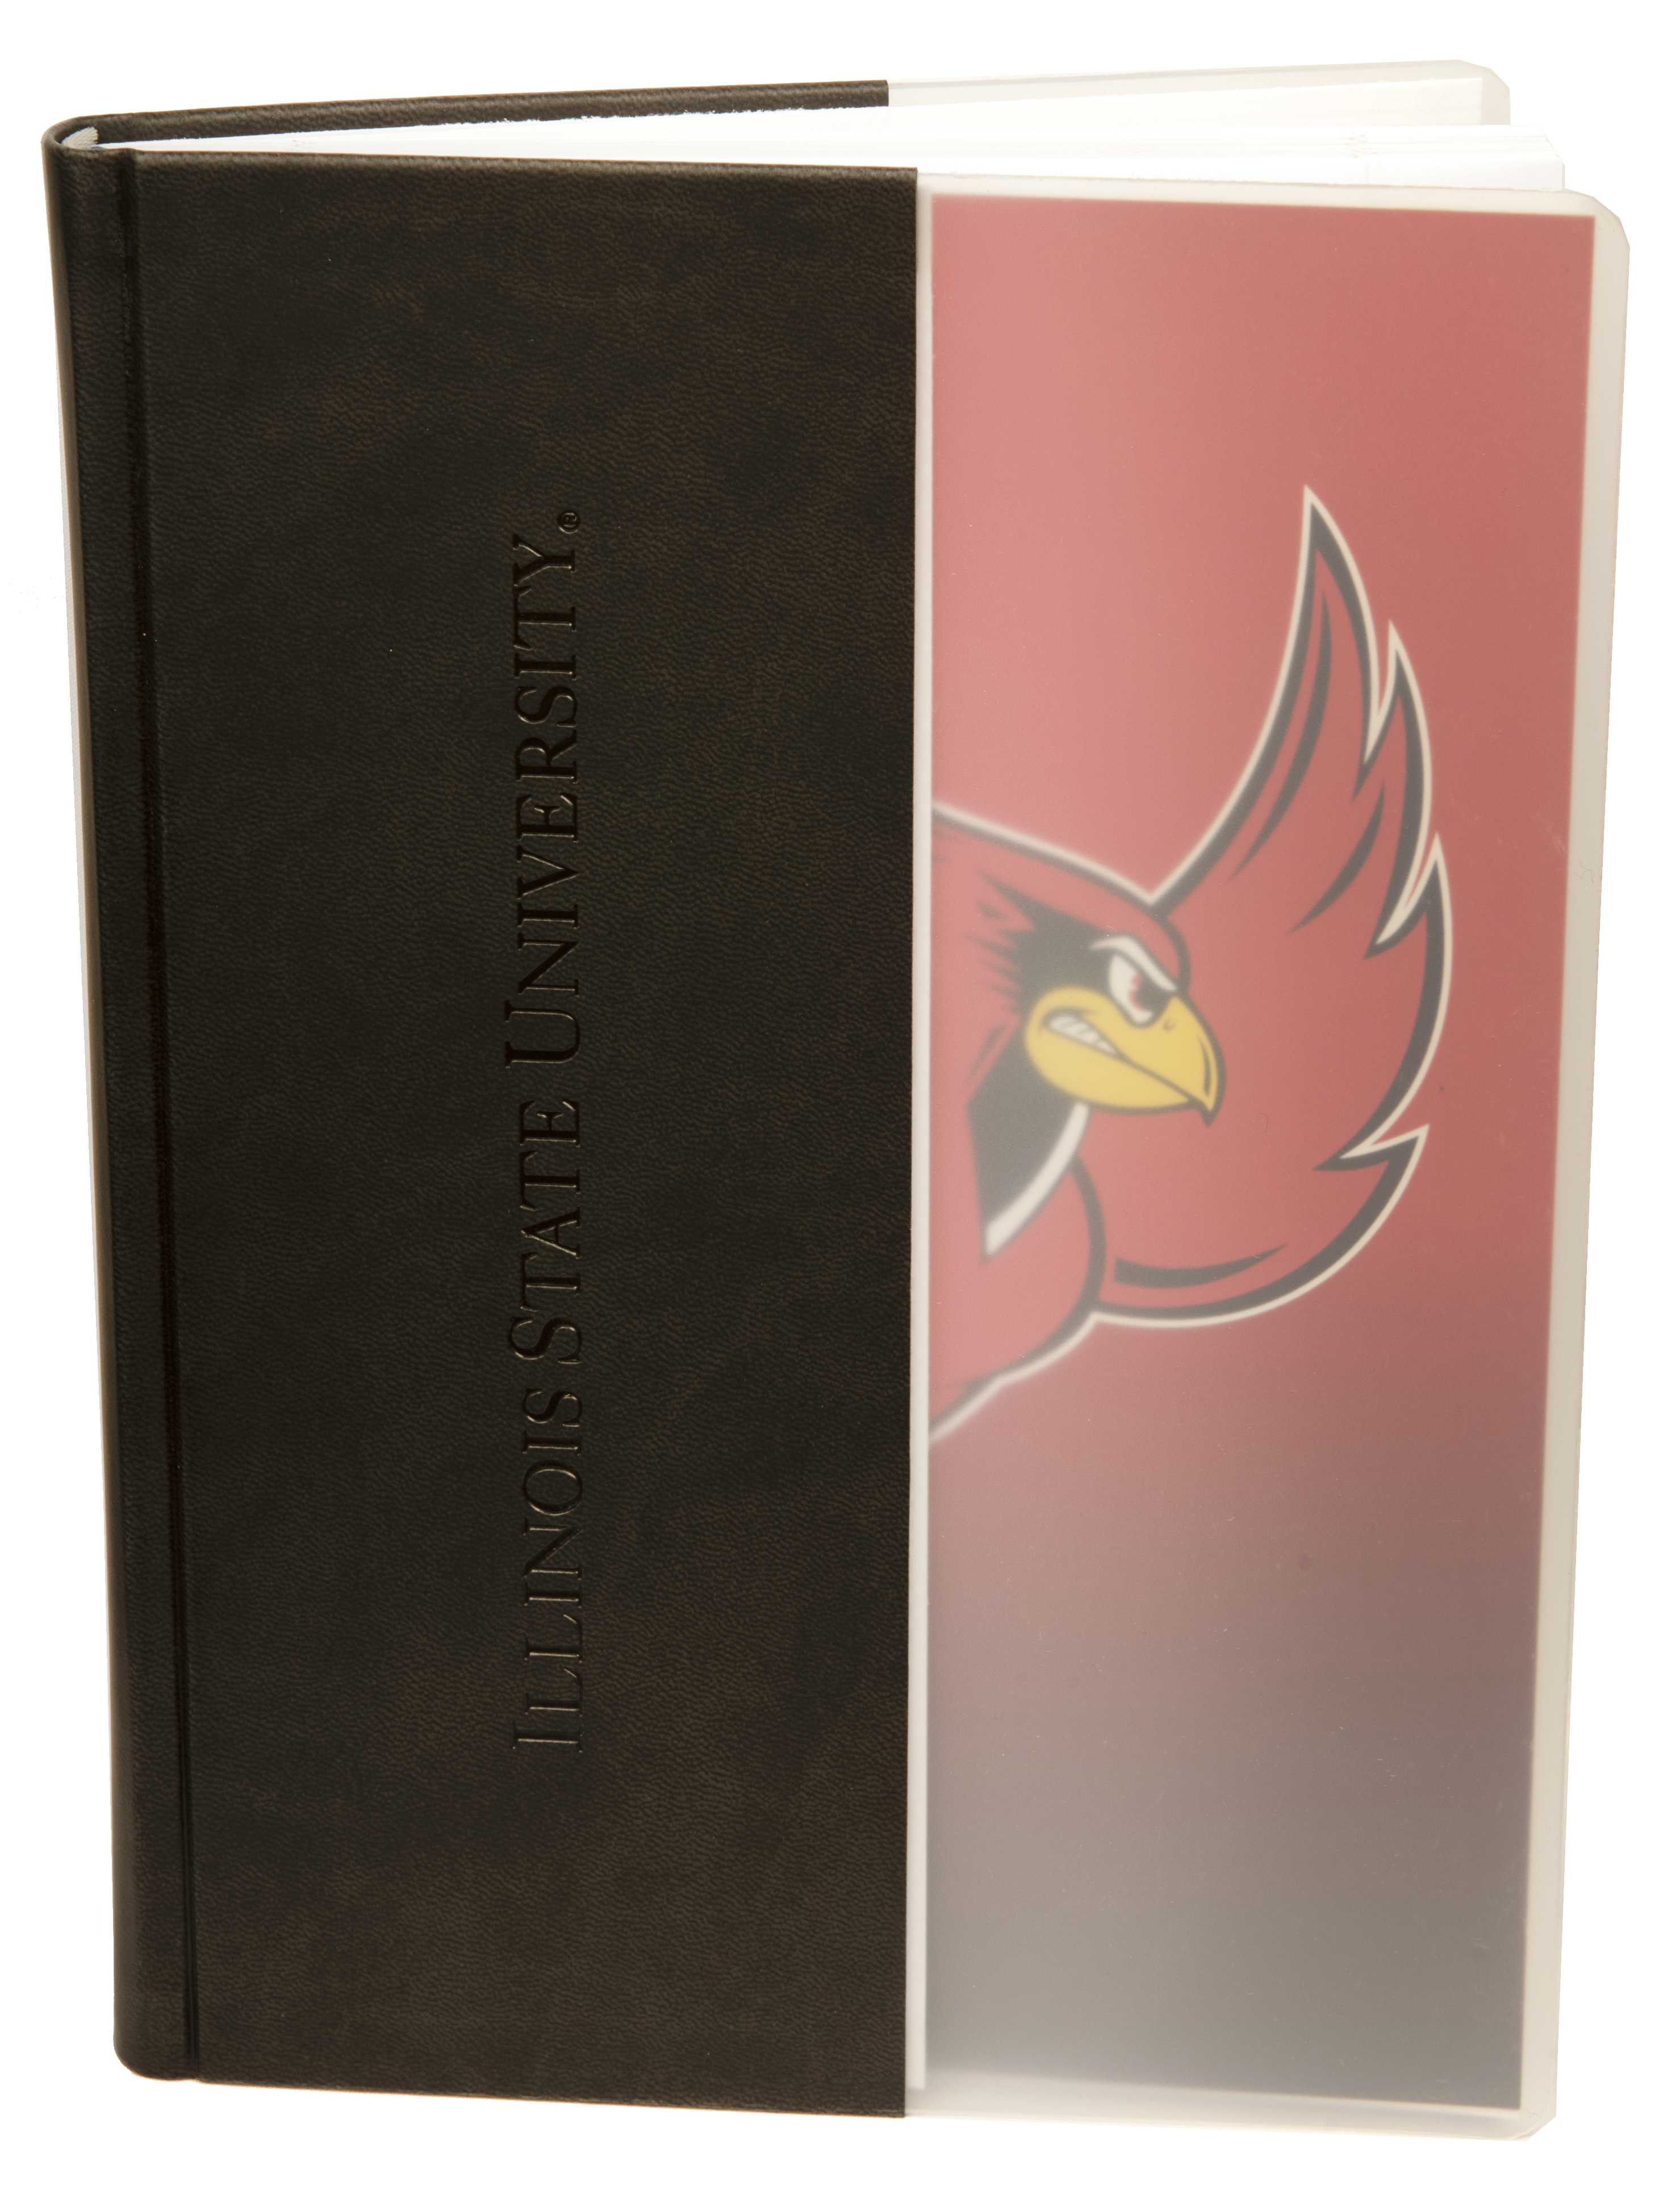 Photo of Redbird in Flight notebook